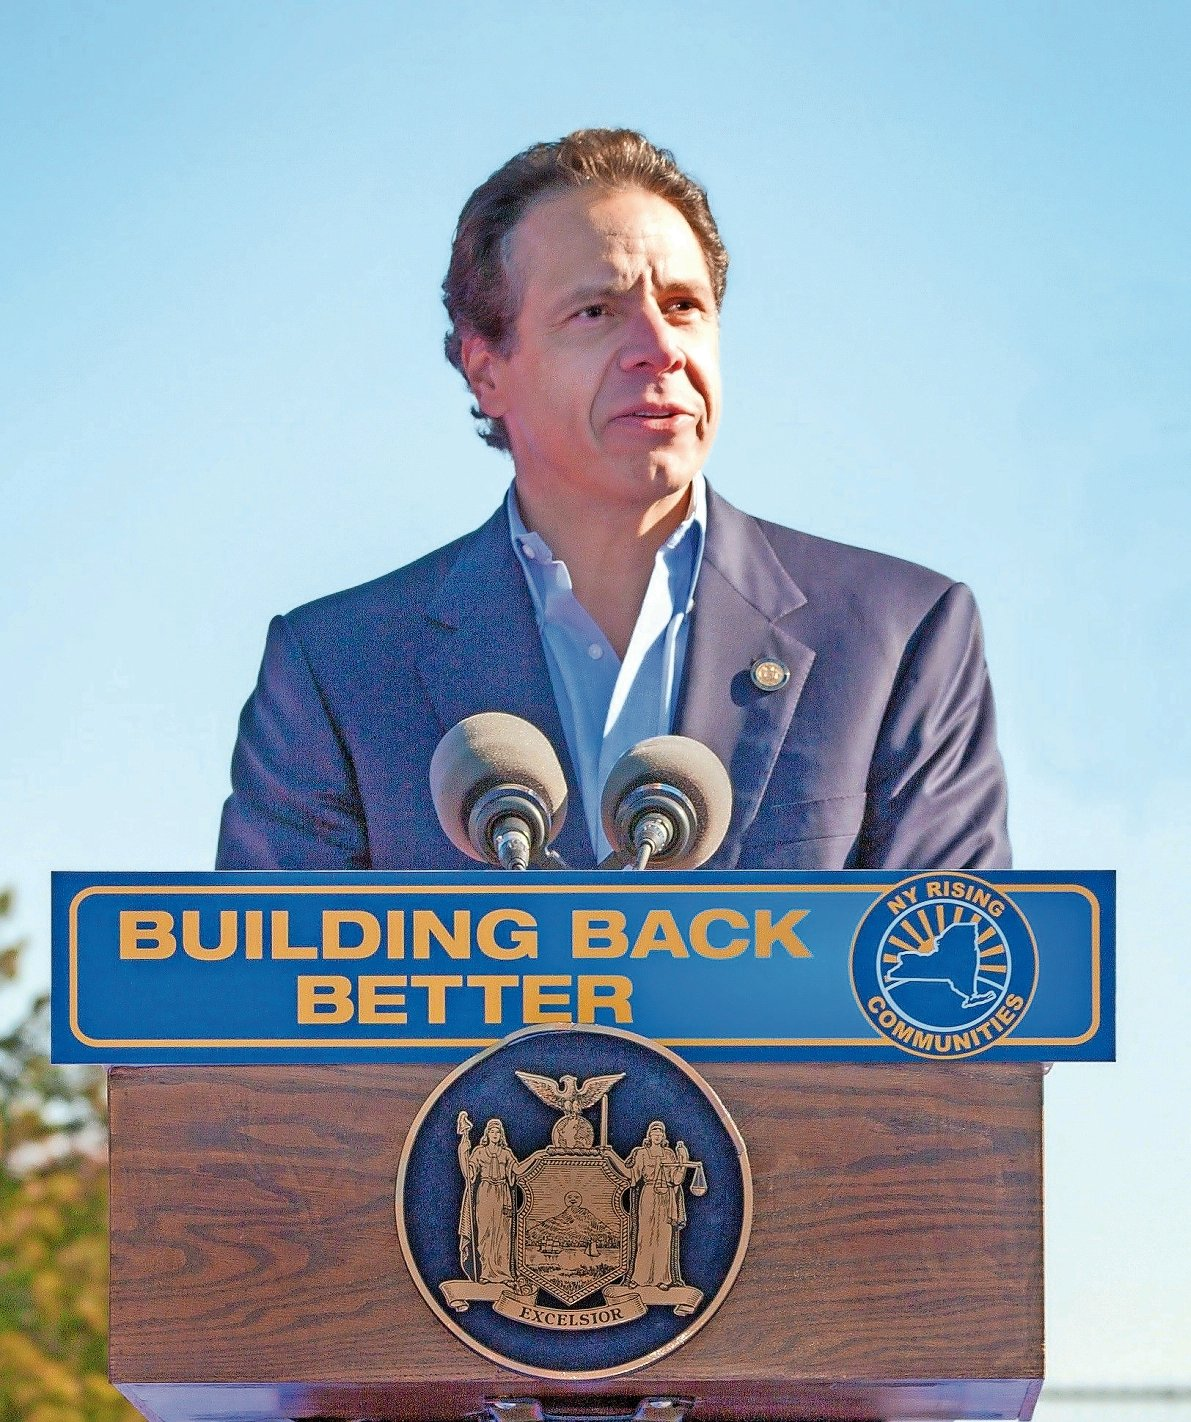 Gov. Andrew Cuomo at a press conference in Long Beach in 2013, when he announced plans to protect the city's industrial district.